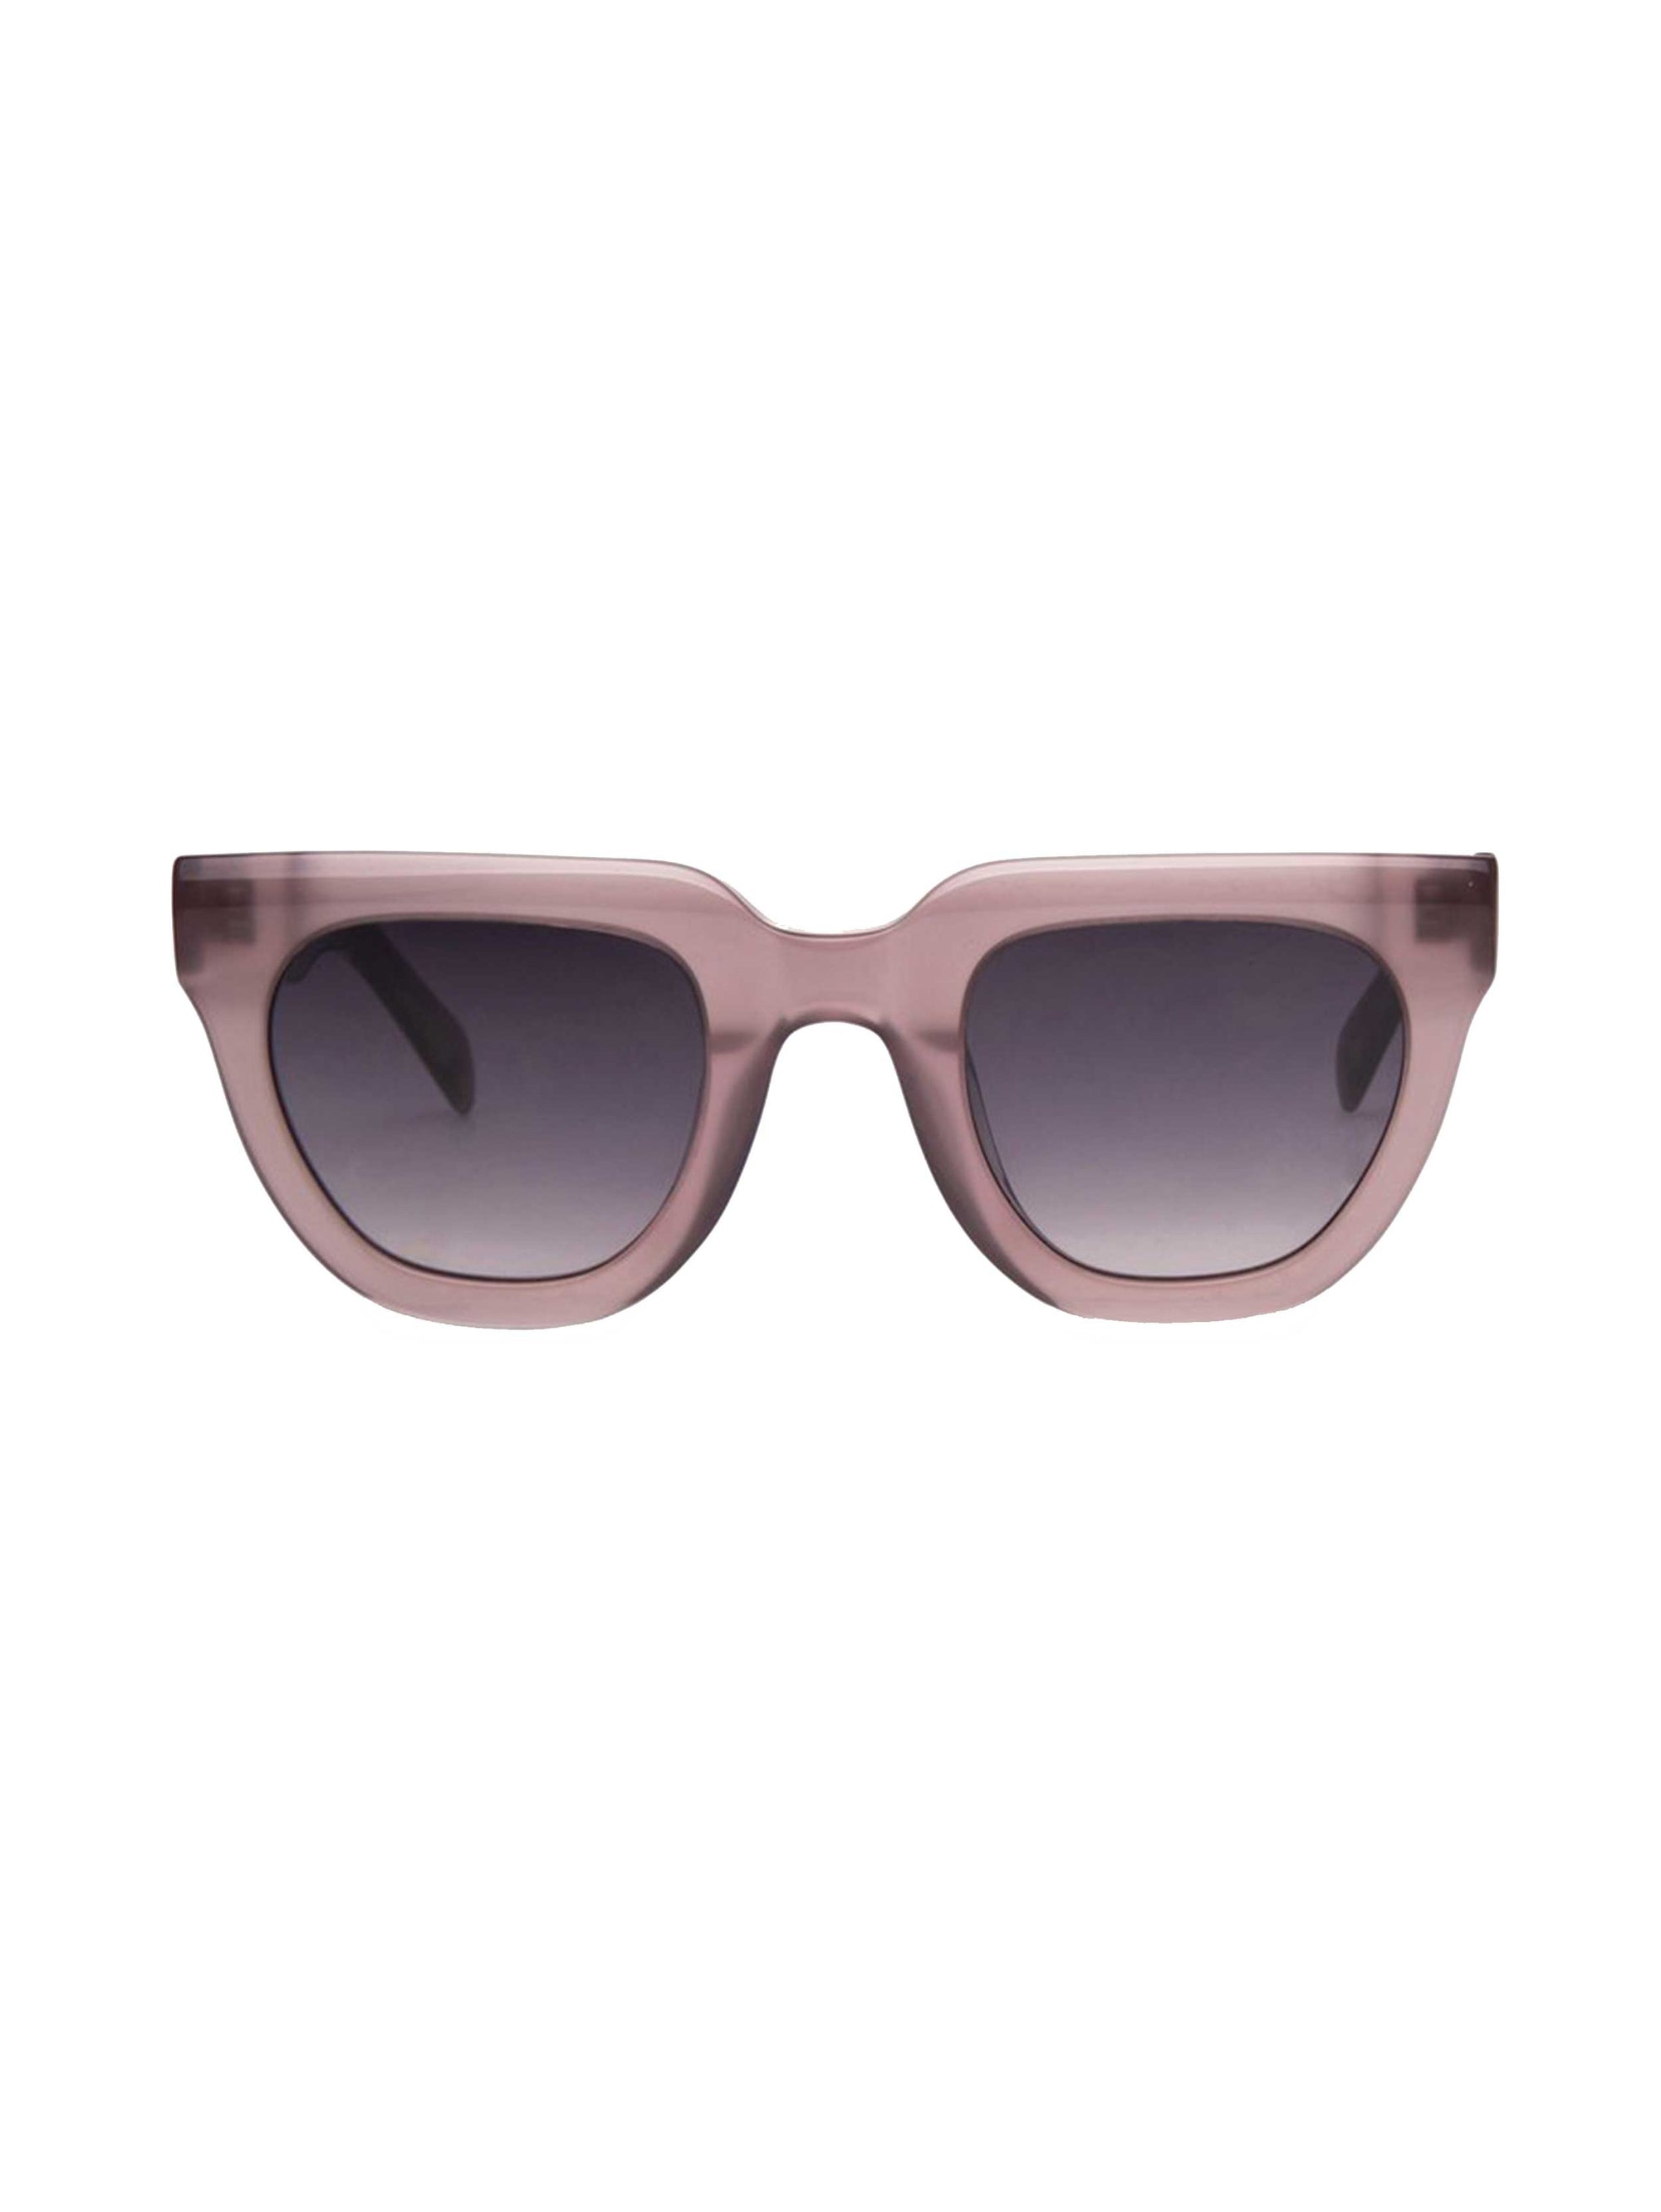 Lentes Carolina Lemke CL7739 02